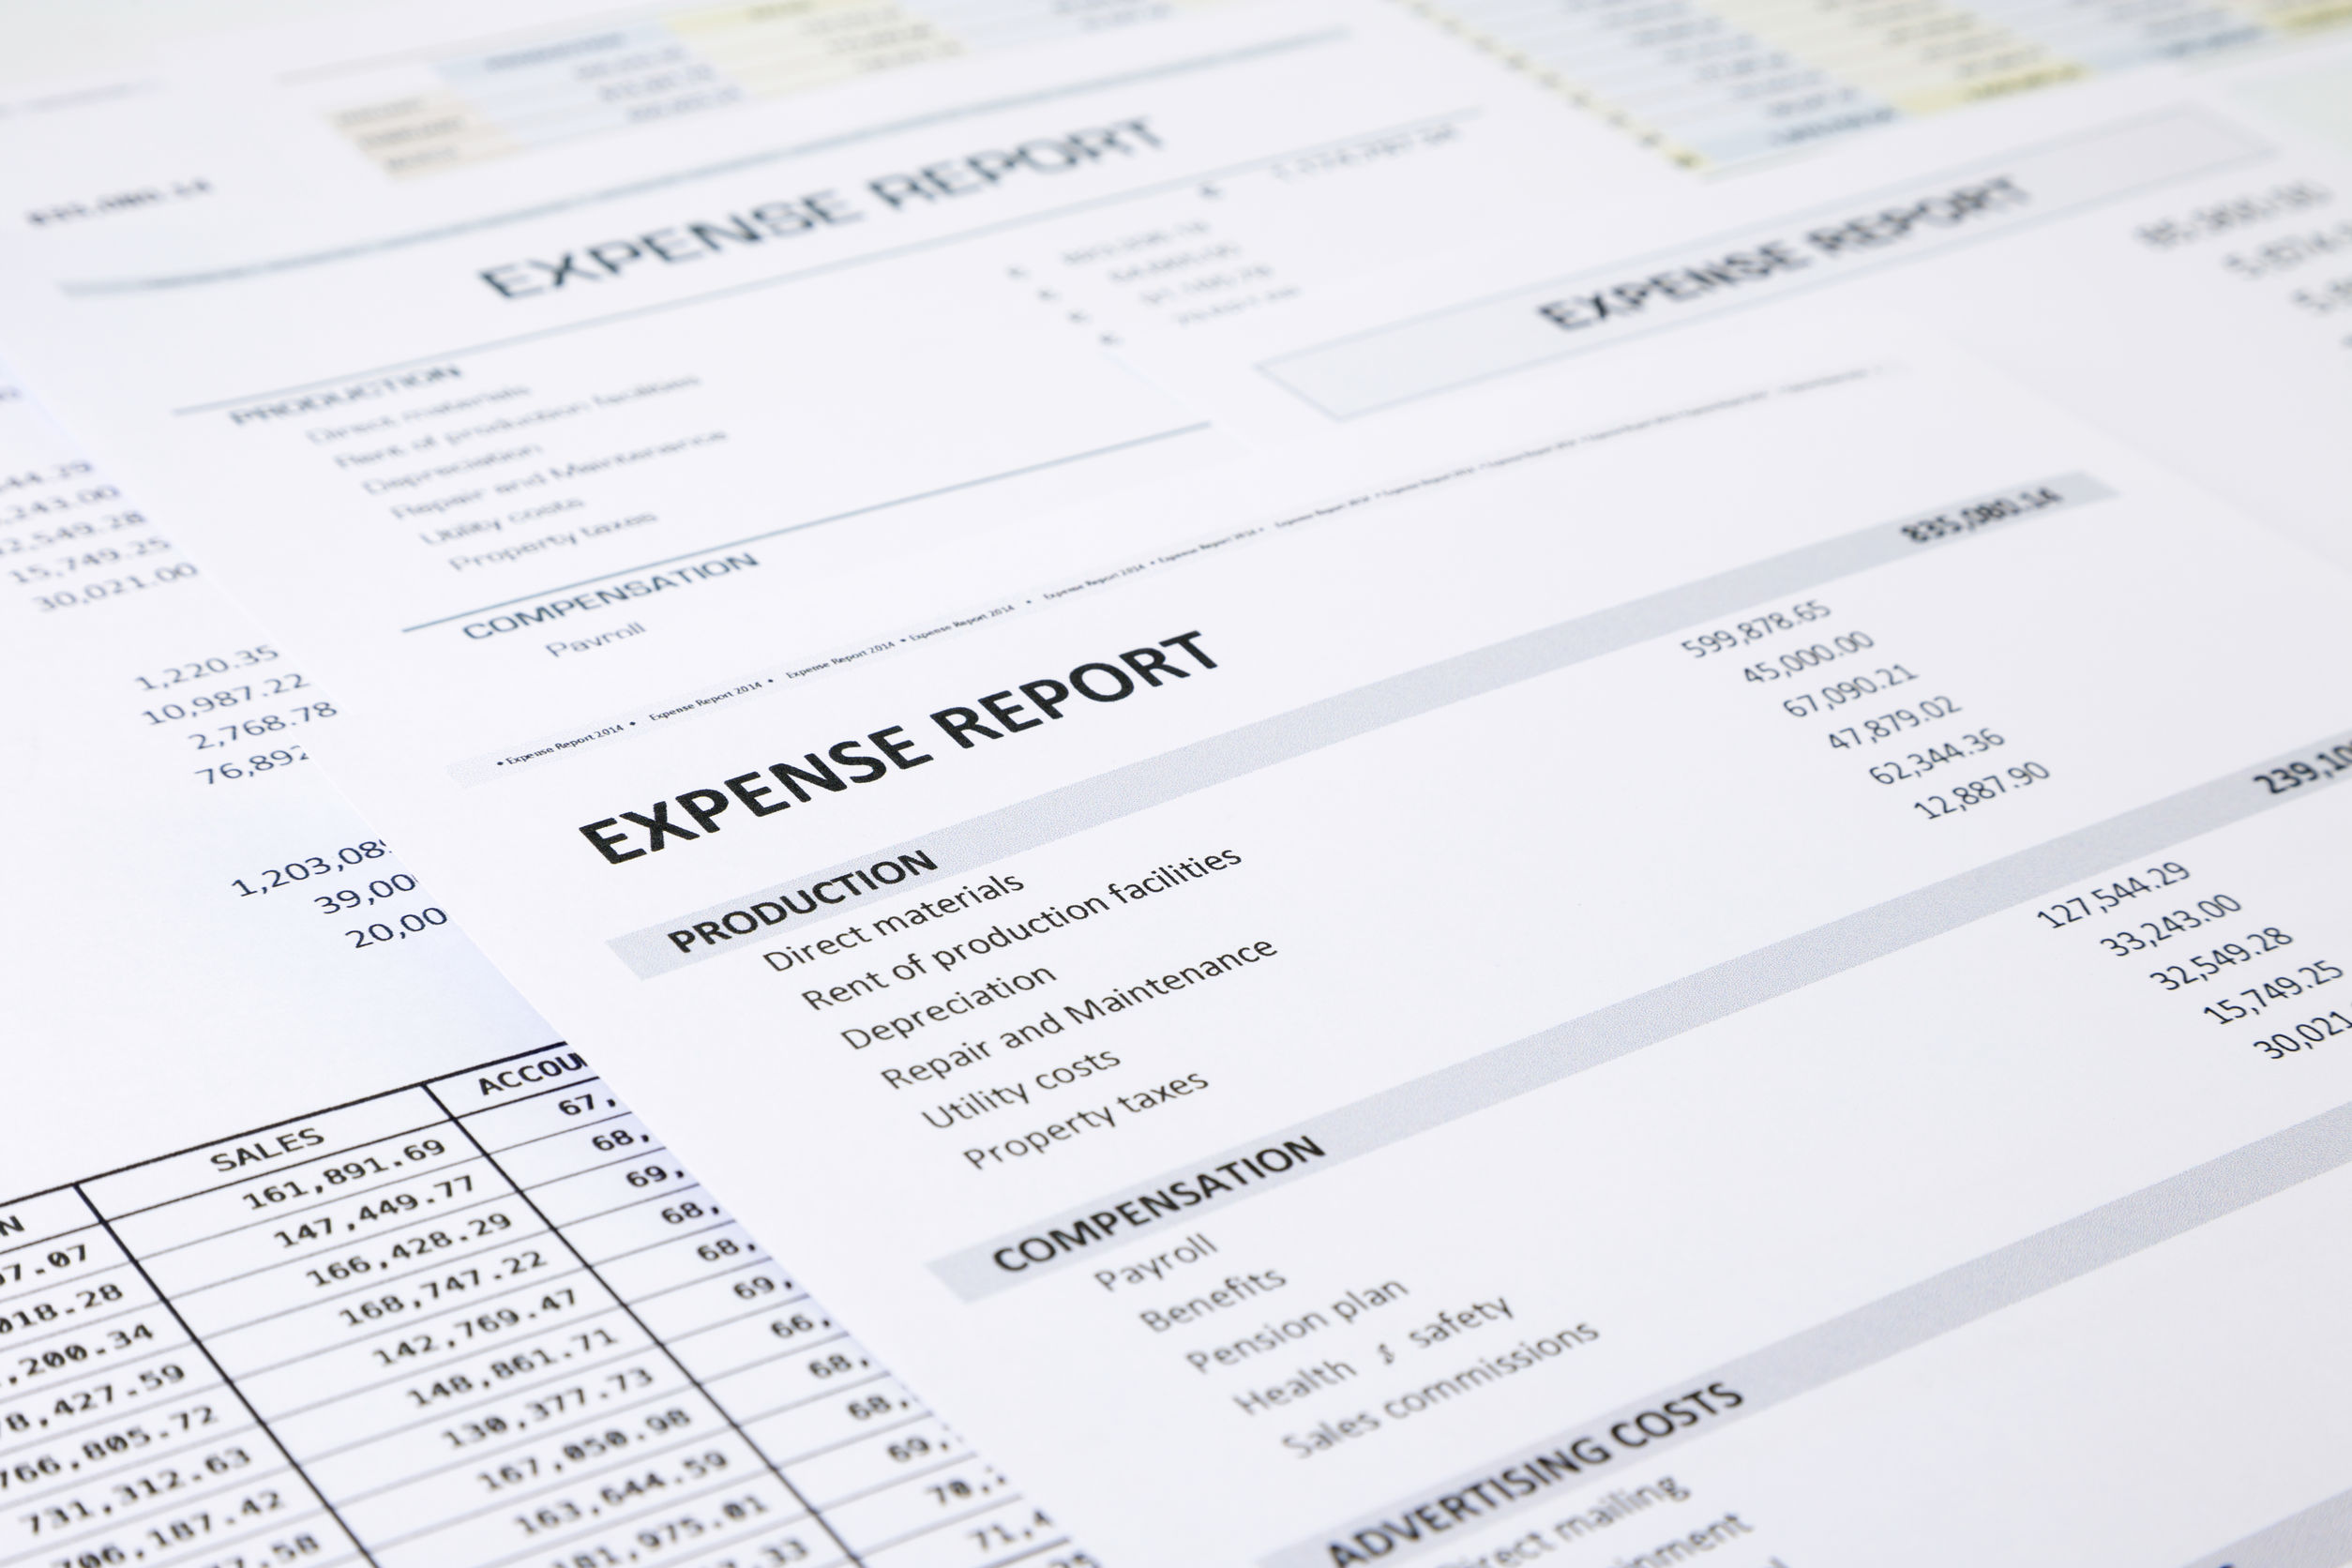 34188175 - Summary Of Business Expense Report Focus On Expense Report Word